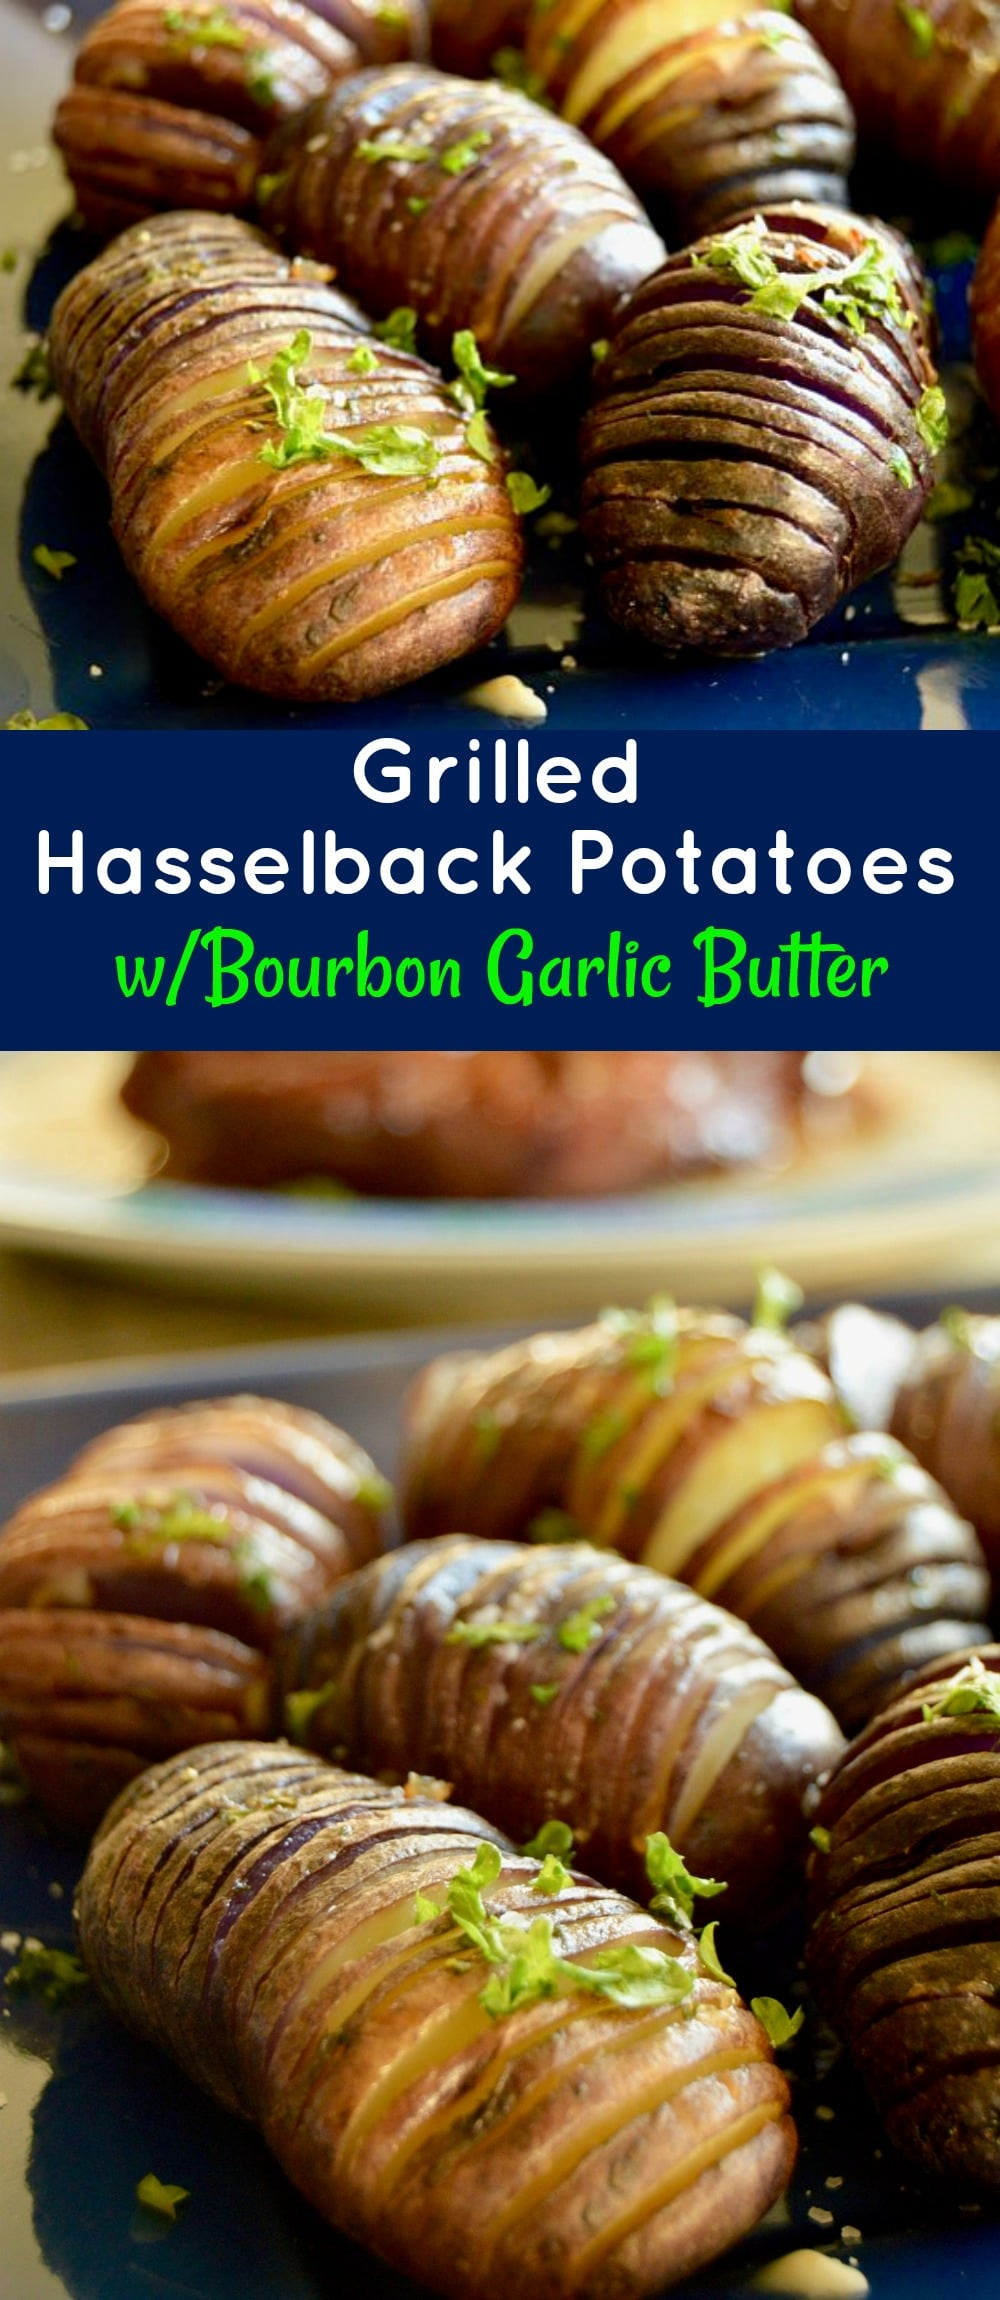 Grilled Hasselback potatoes are ideal for a BBQ side dish. Easy to prep ahead, crunchy on the edges, lightweight centers drenched with bourbon garlic butter for lots of flavor!